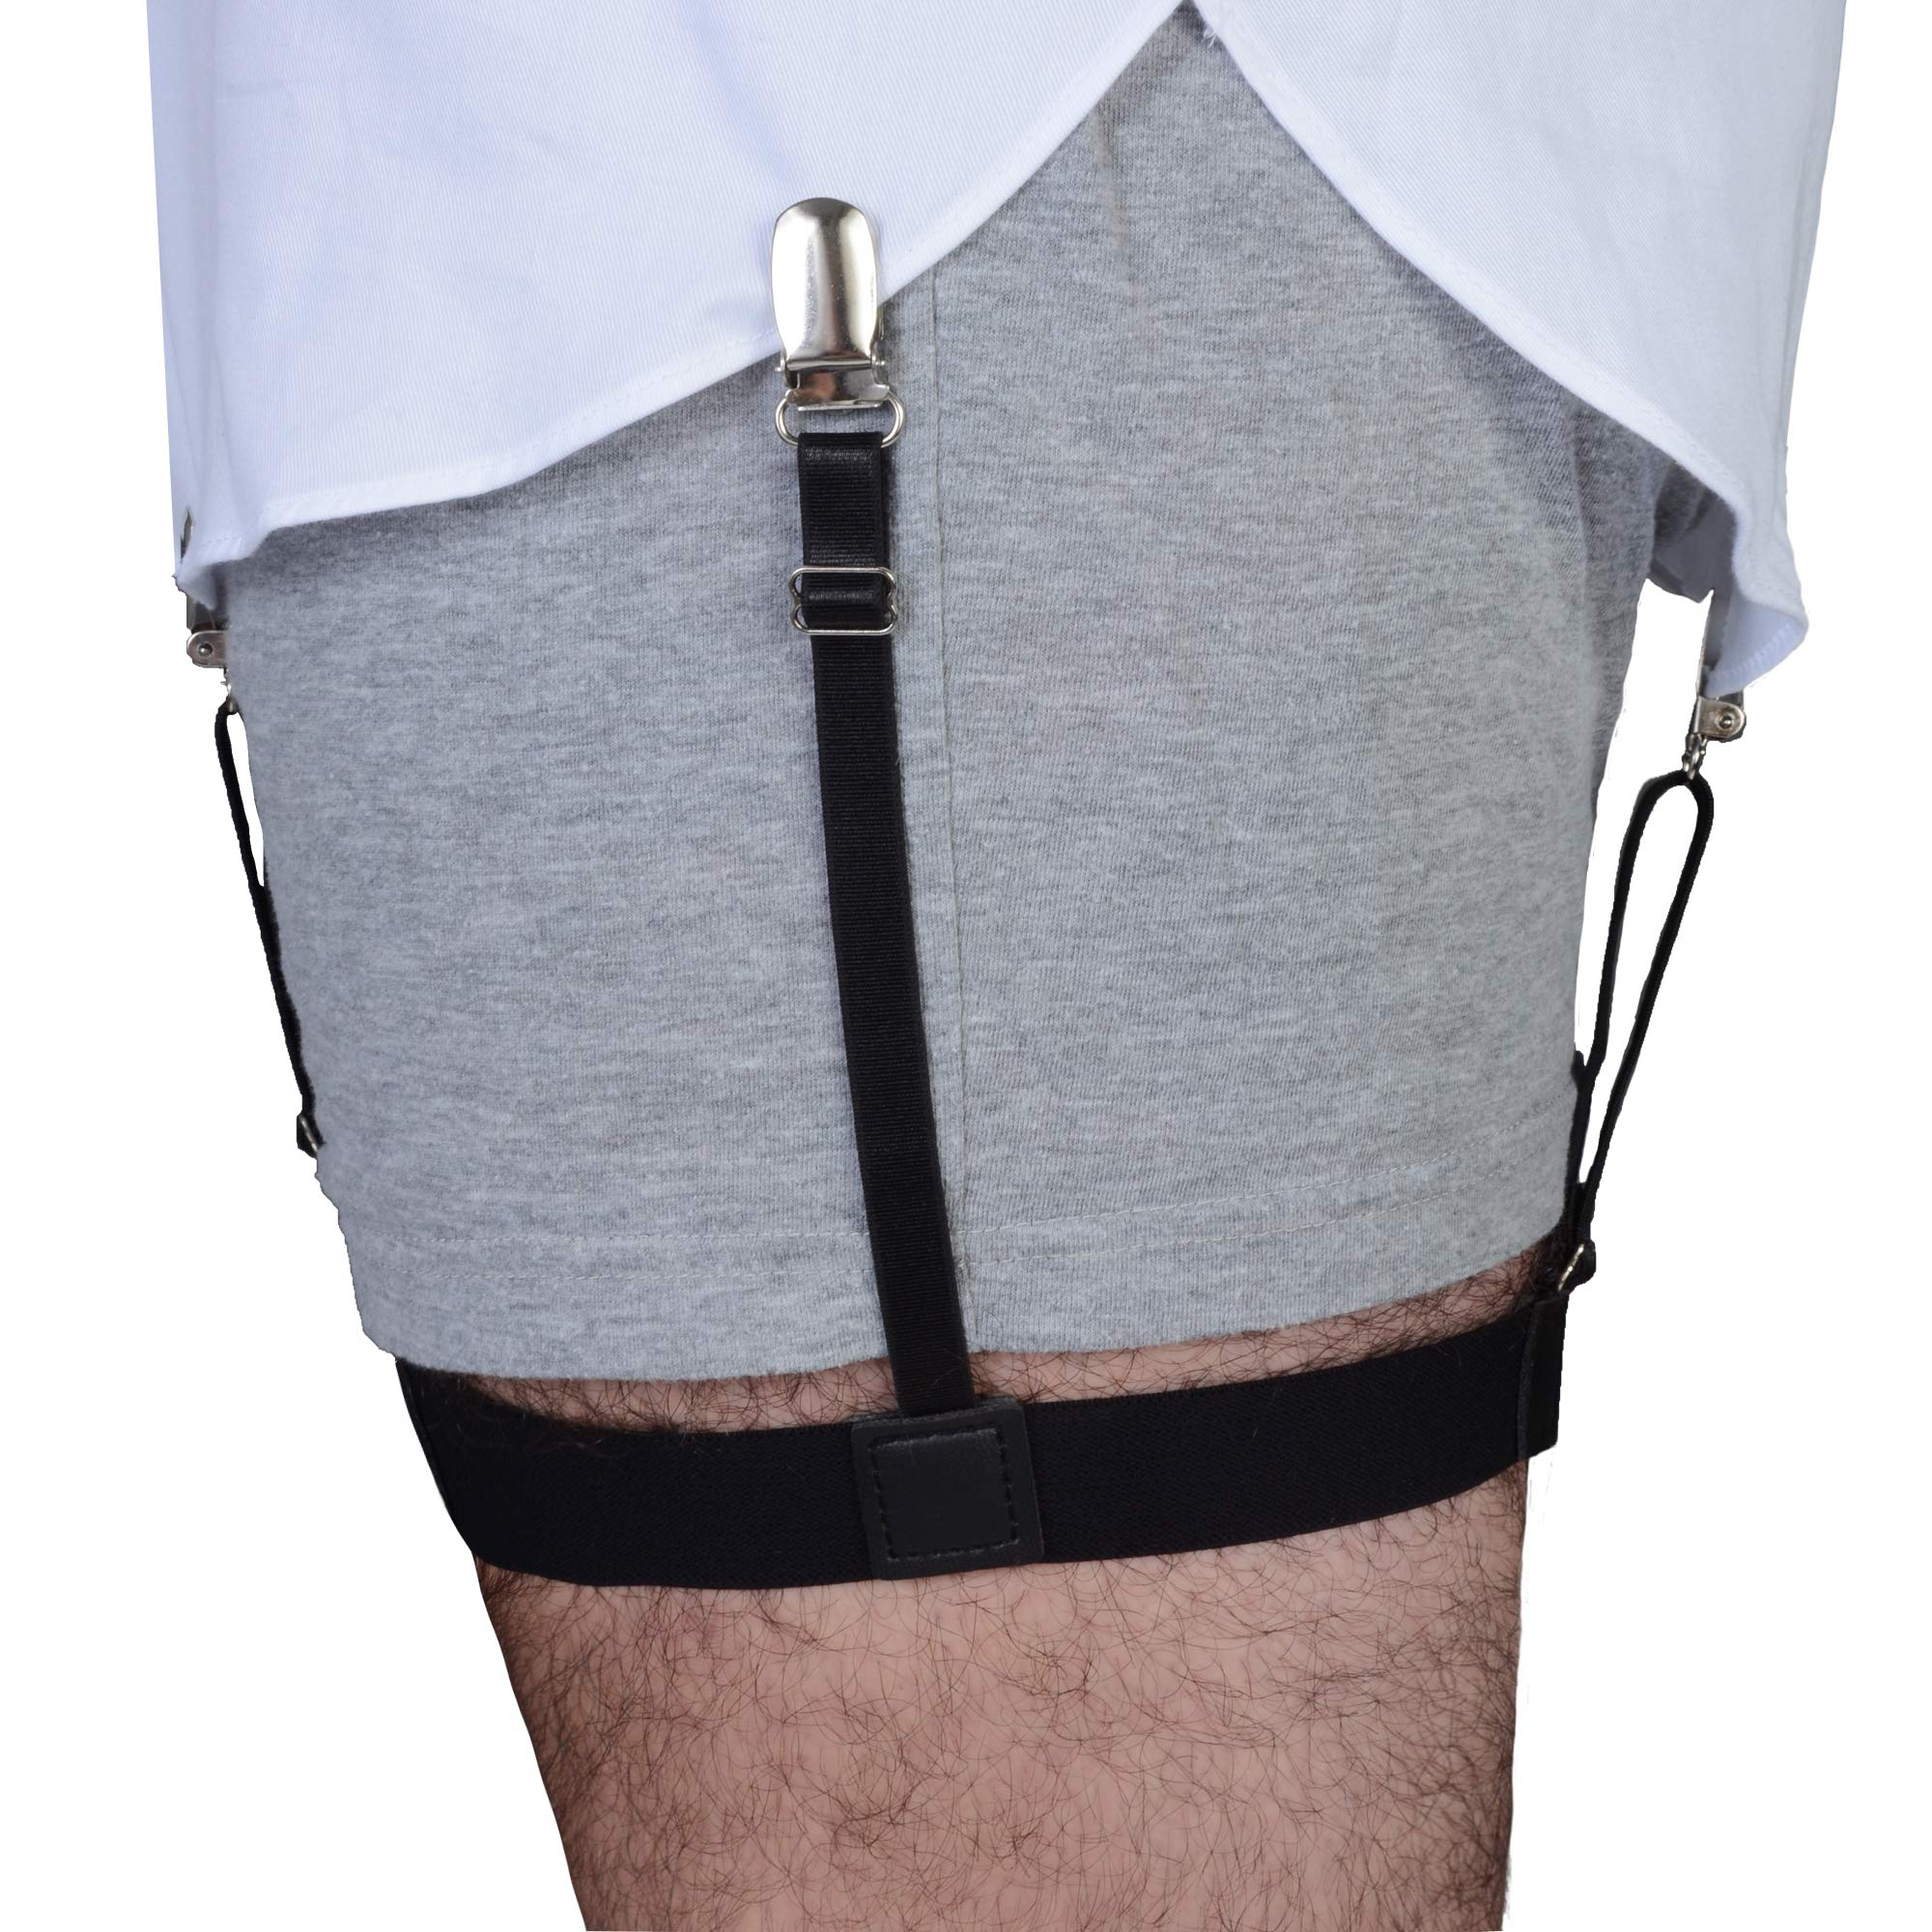 Adjustable Elastic Suspenders Shirt Holder Straps with Locking Non-Slip Metal Clips 2-Pack 1 Pair Shirt Stay Foot Loop Stirrup Style Shirt Stays